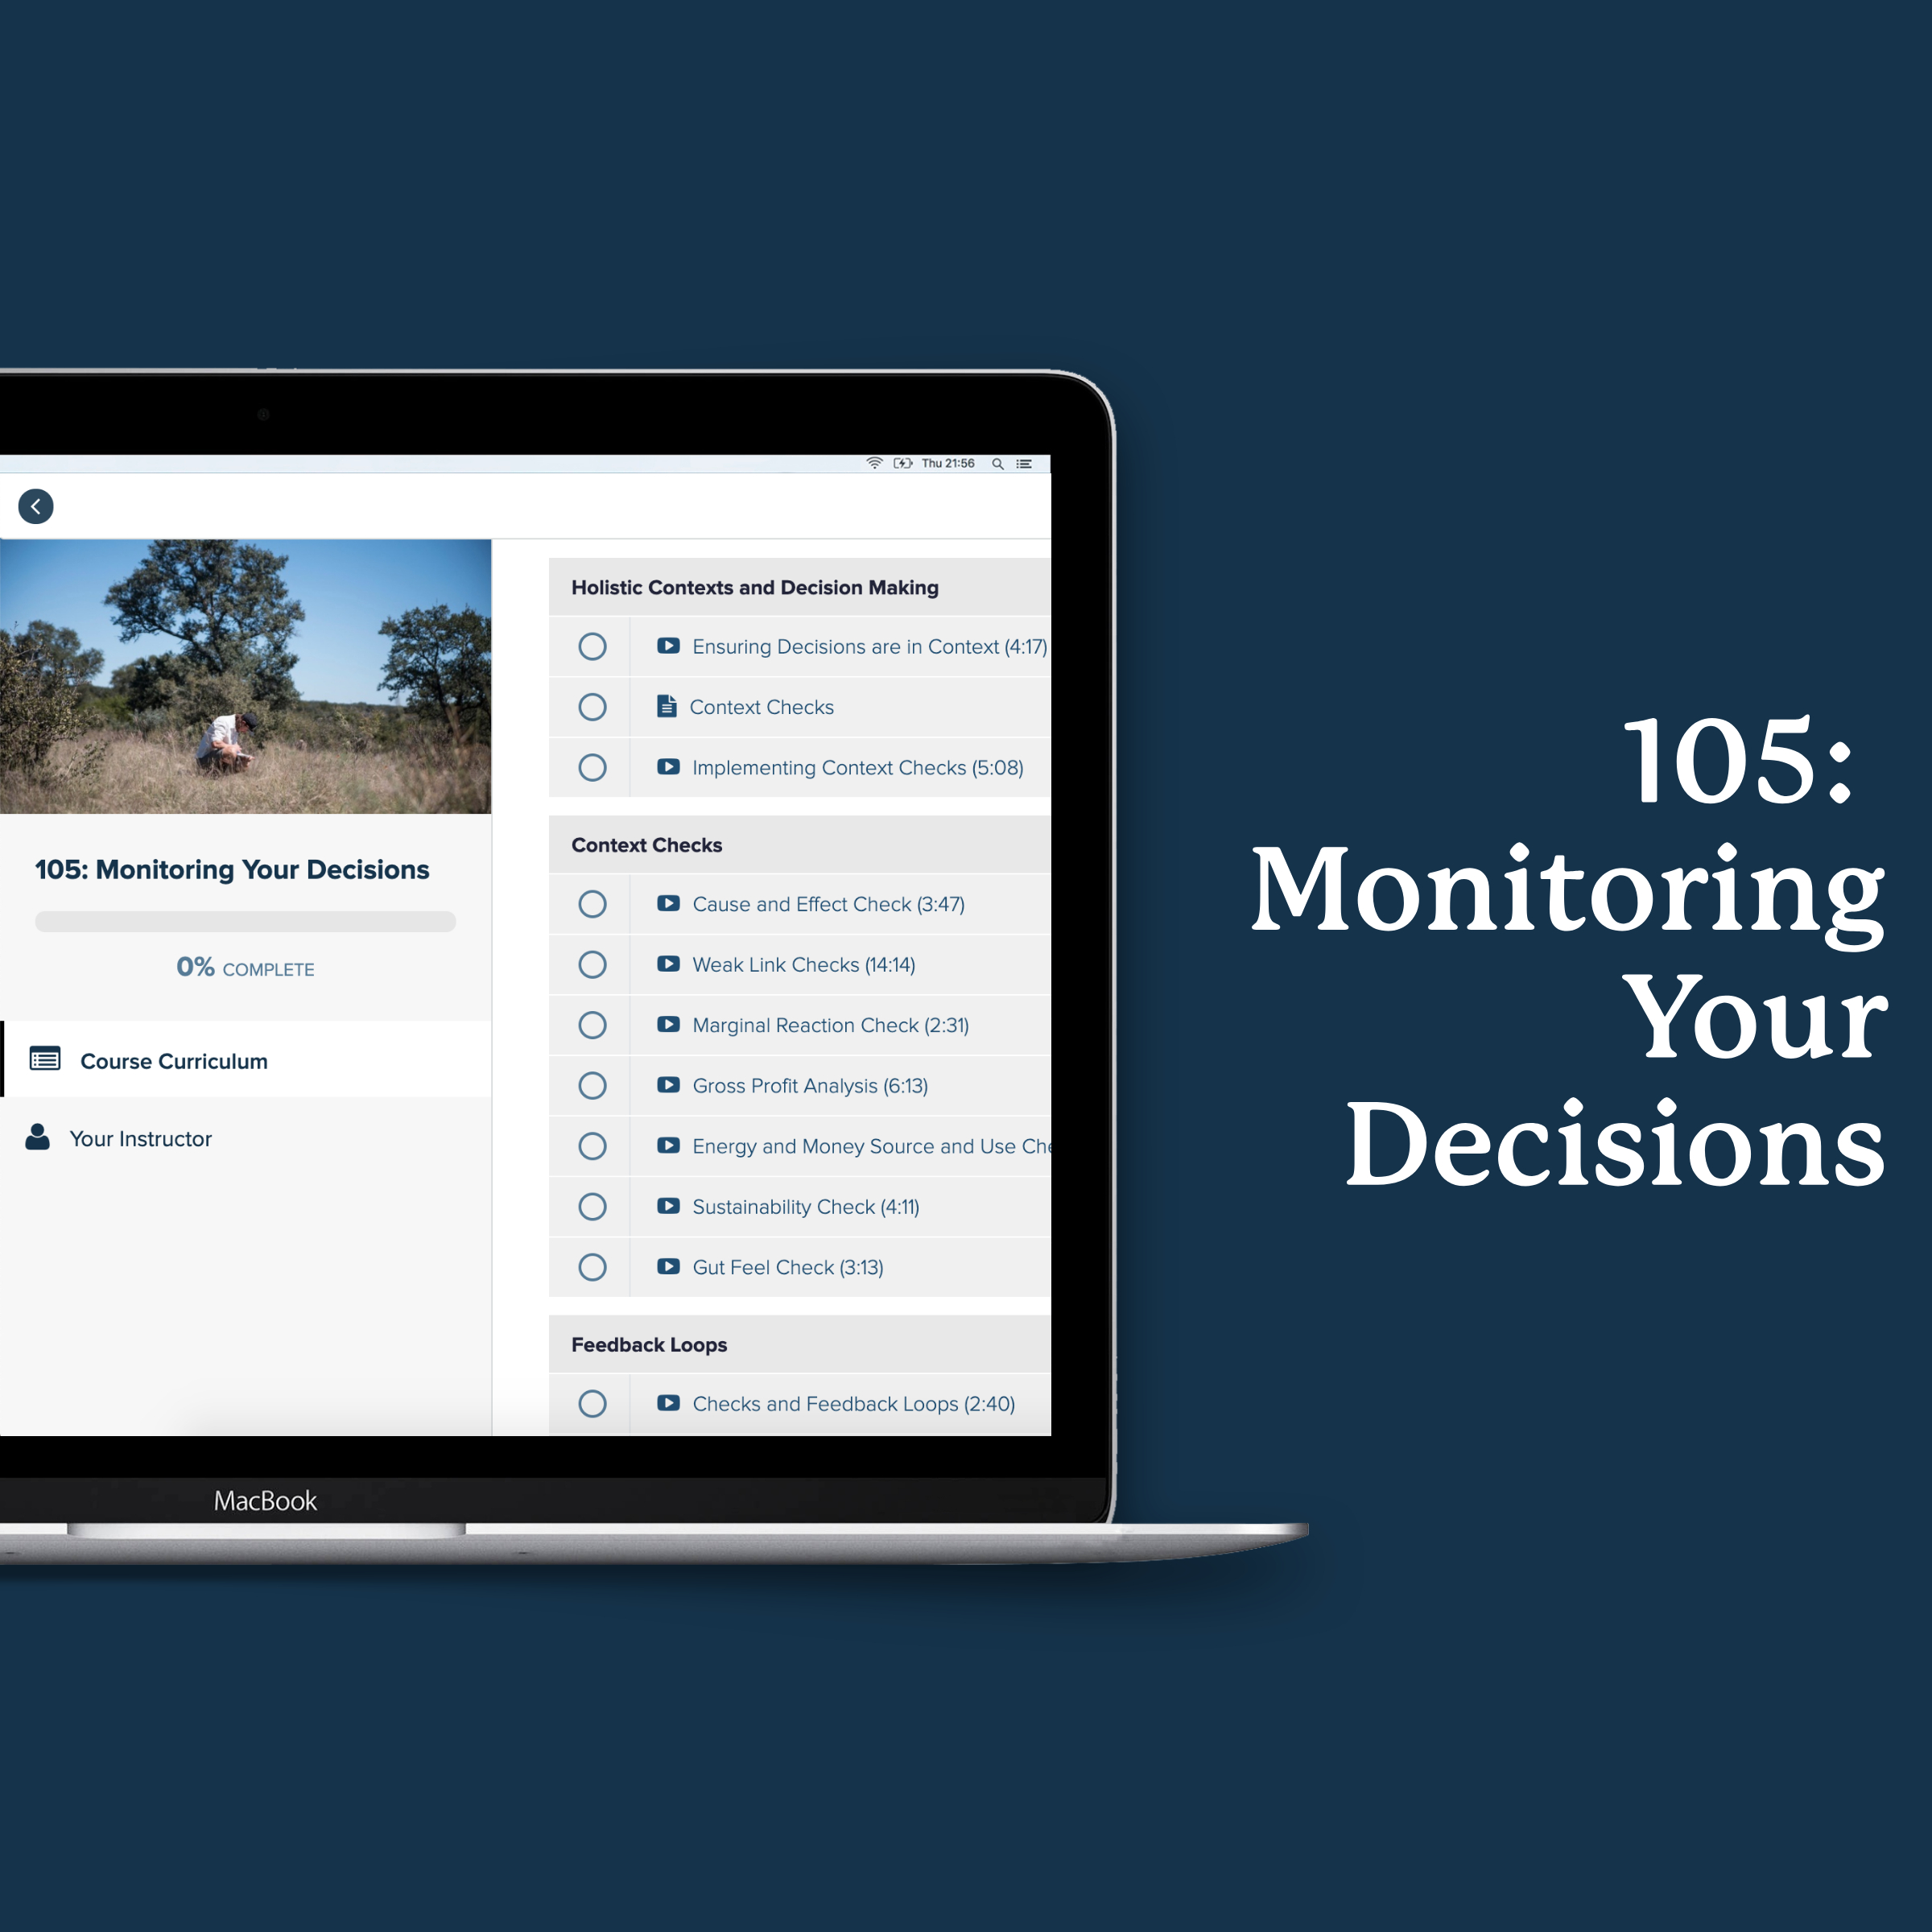 Course 105: Monitoring Your Decisions